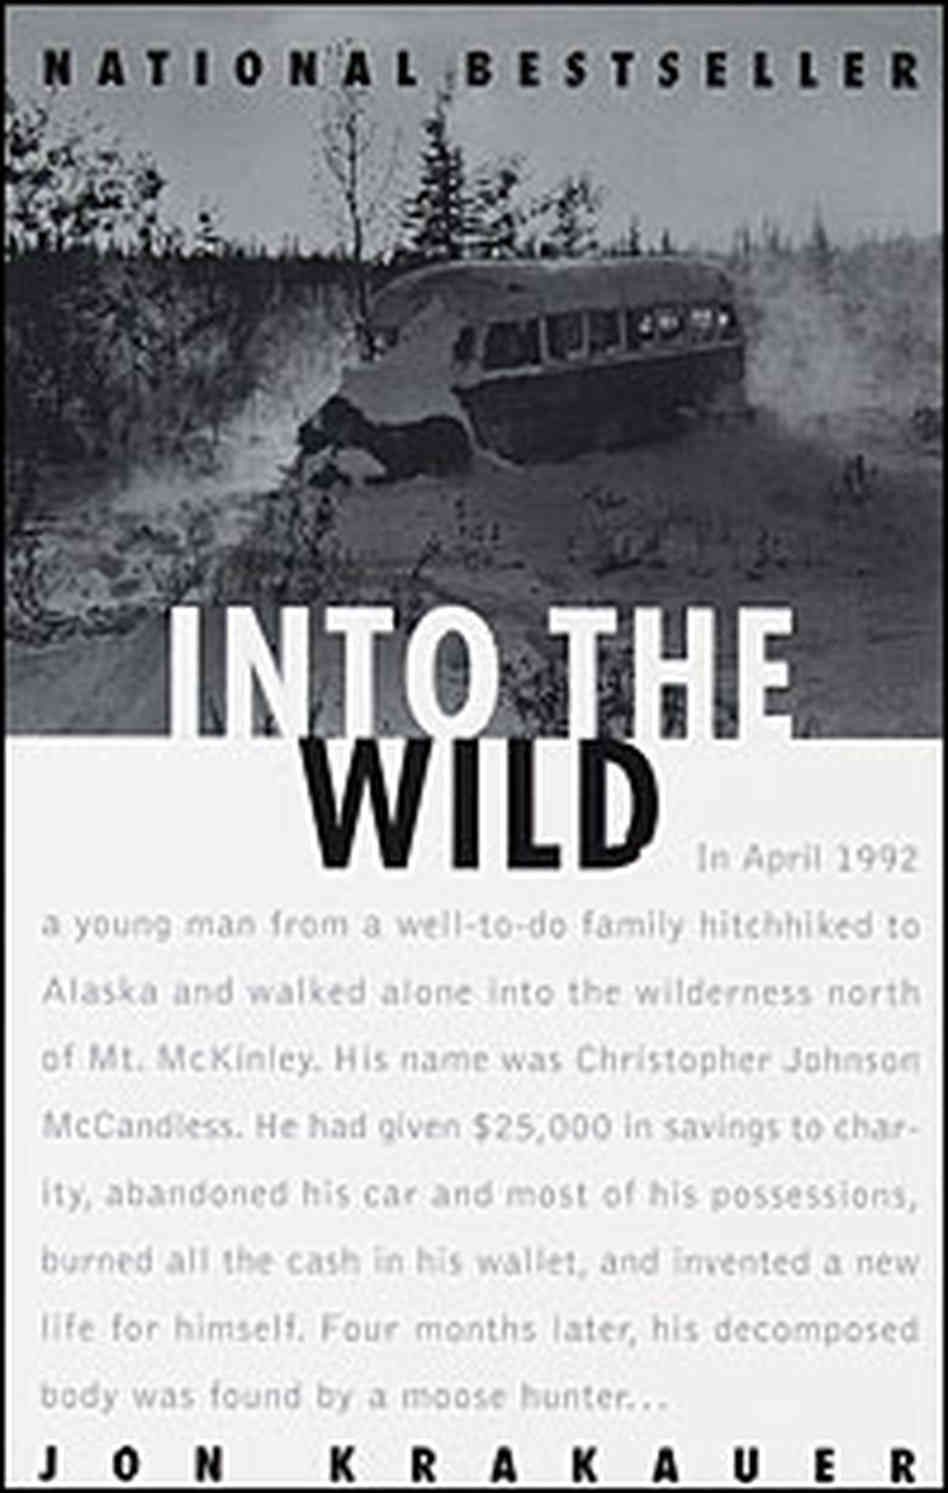 into the wild by jon krakauer photographic book cover  into the wild by jon krakauer photographic book cover 1997 edition both the old and